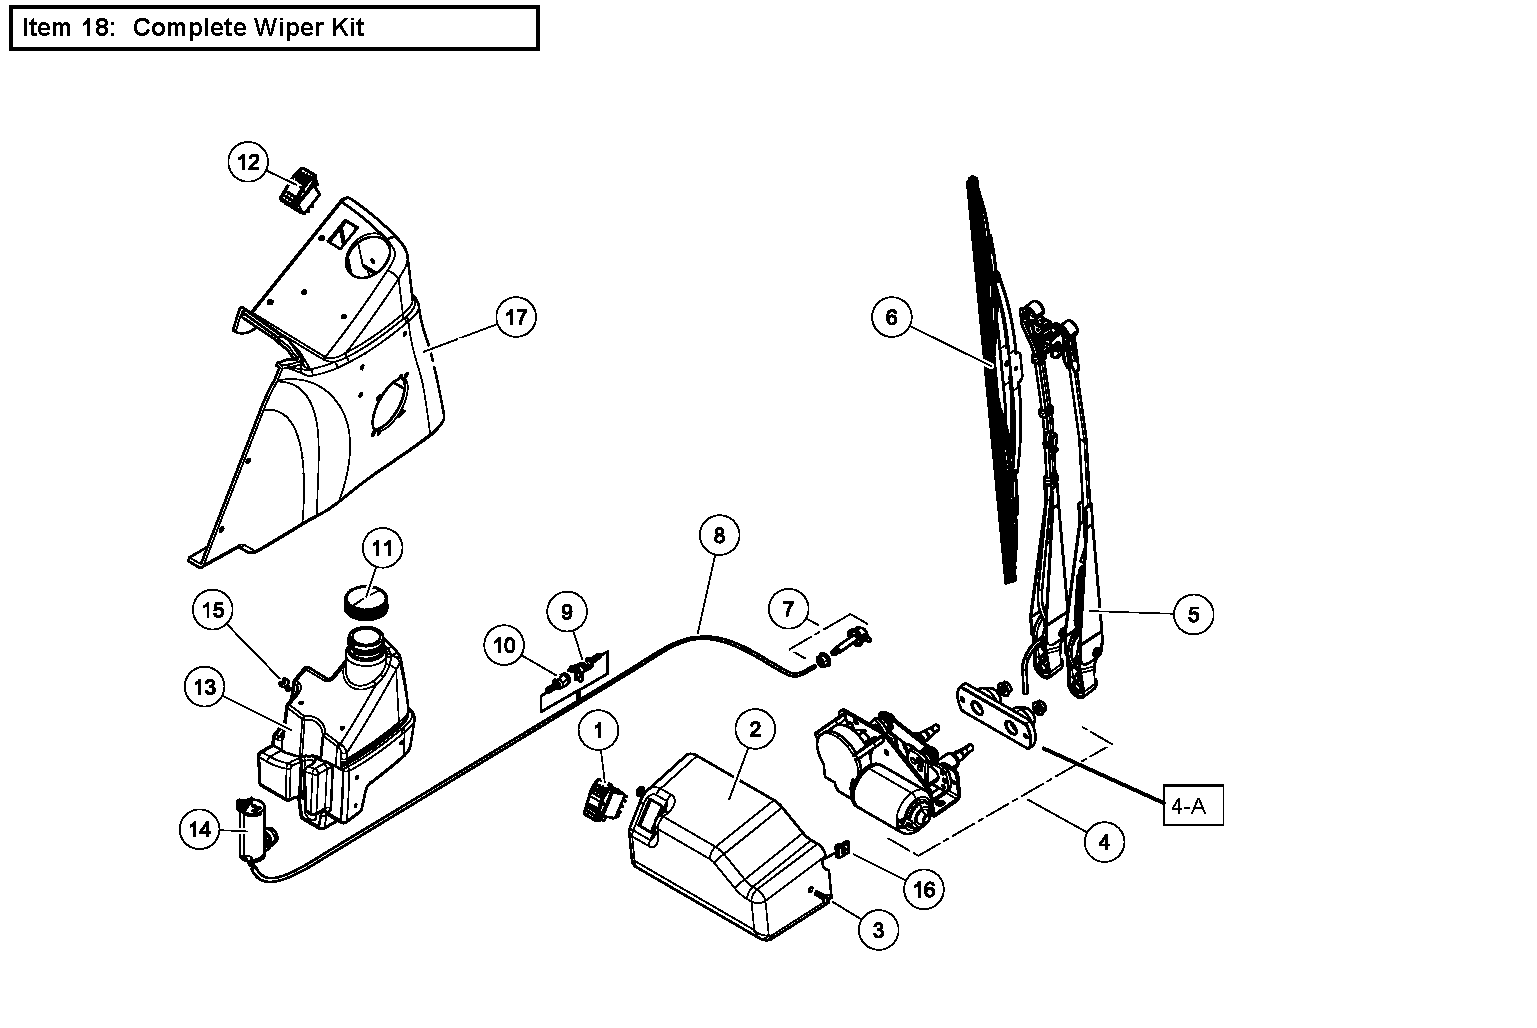 Diagram 7-5A Wiper Assembly